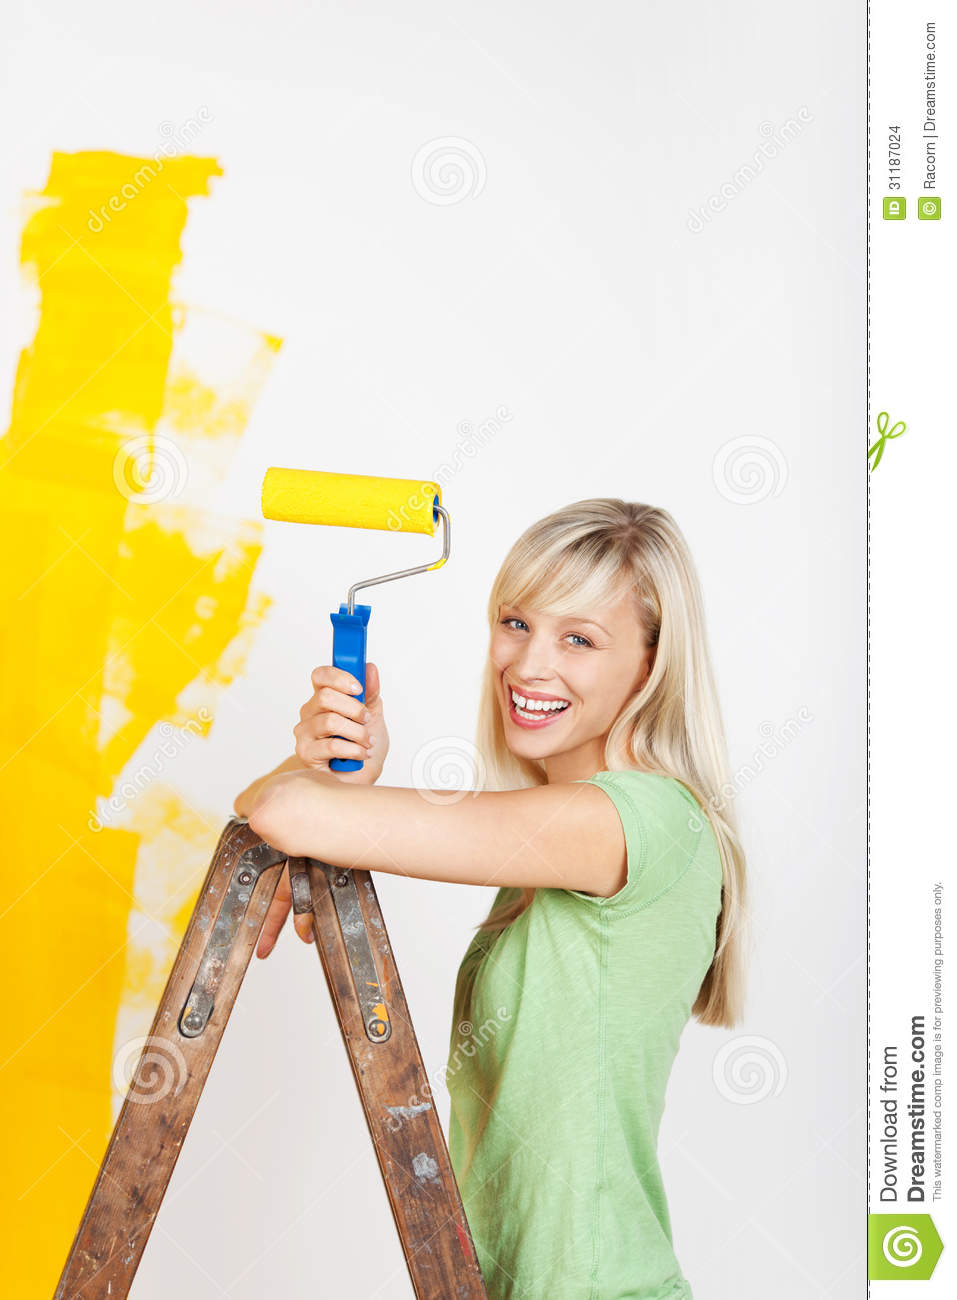 Painter And Decorator Prices >> Happy Woman Painting On Ladder Stock Photo - Image of charming, decorator: 31187024